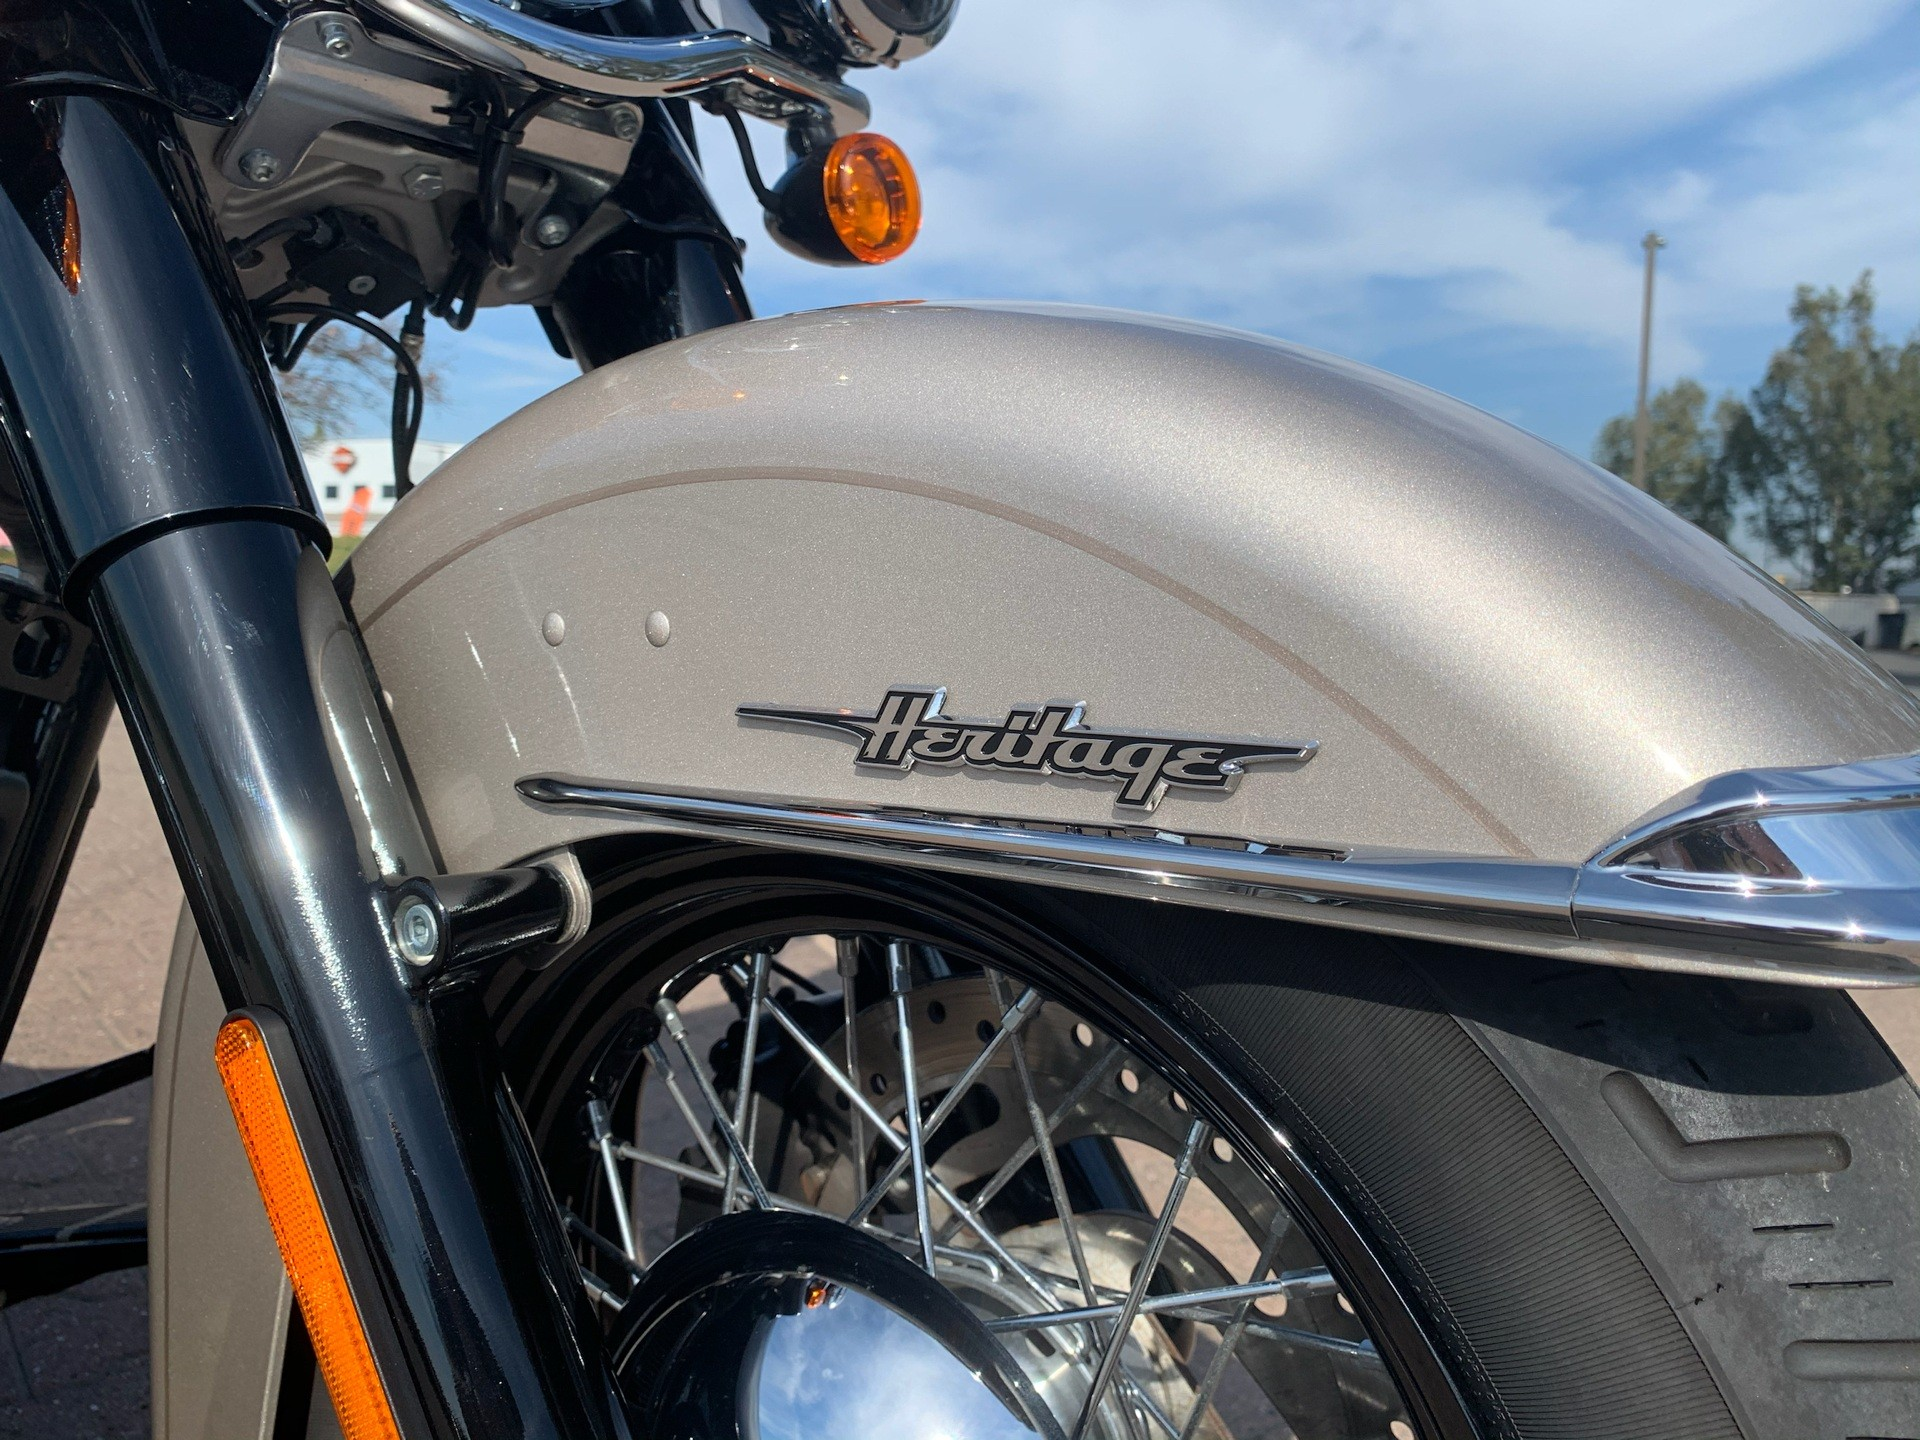 2018 Harley-Davidson Heritage Classic in Vacaville, California - Photo 4